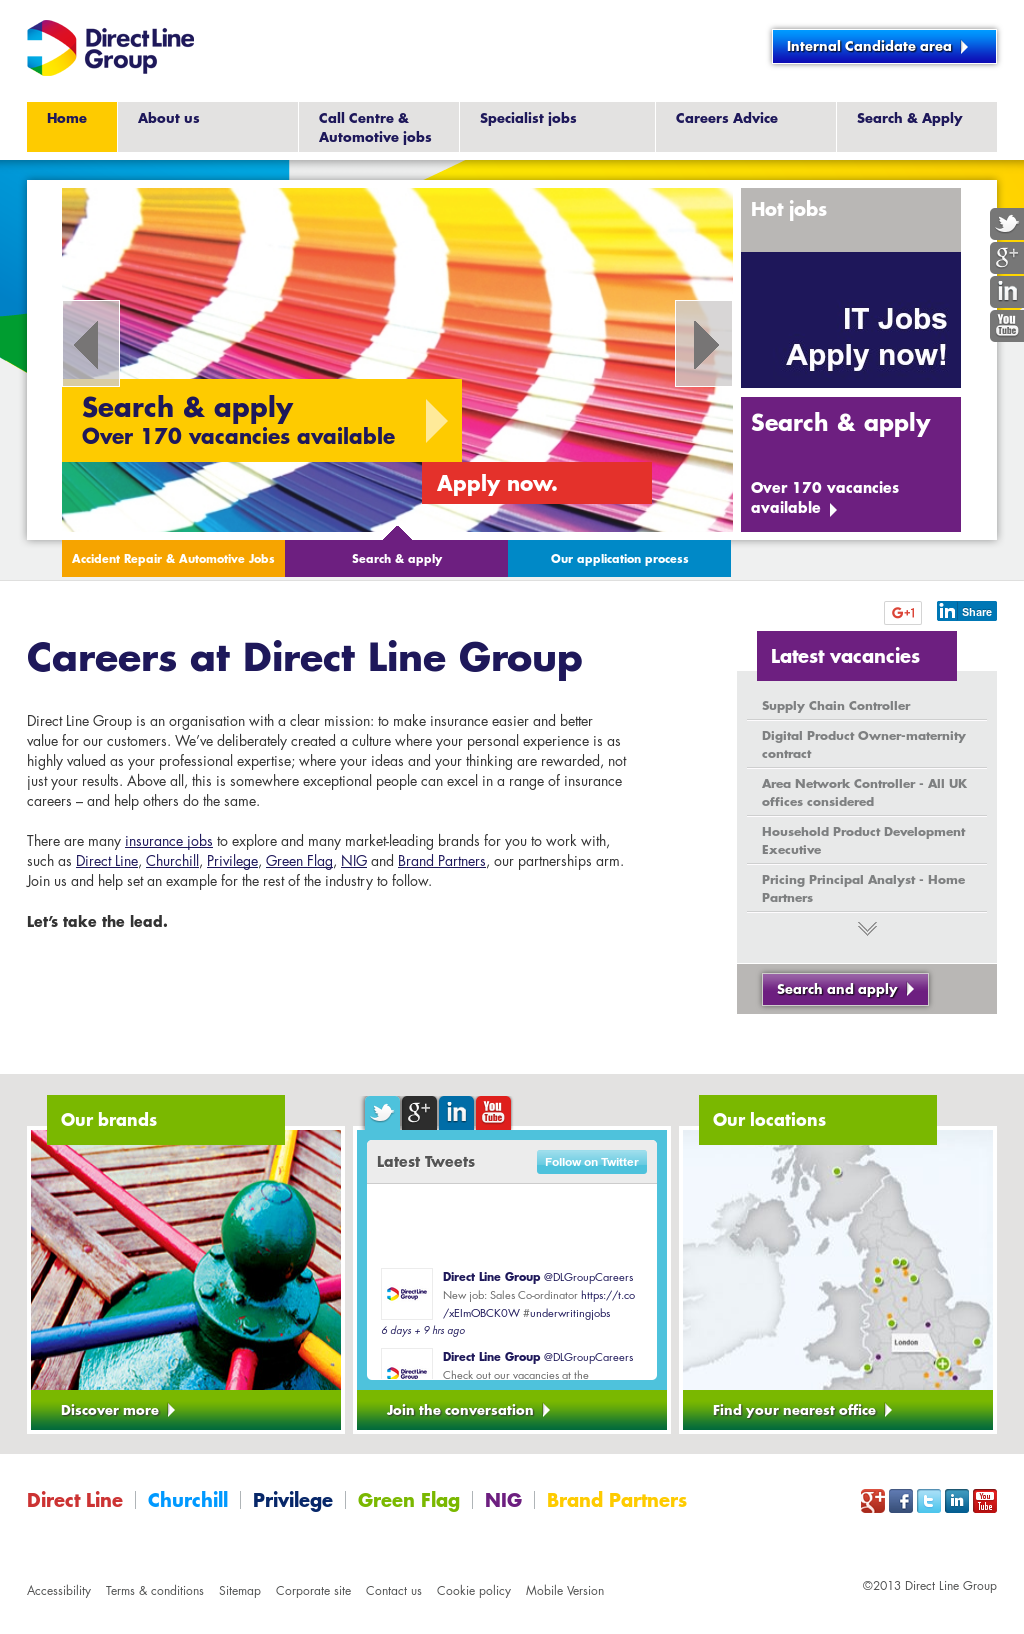 Direct Line Group Competitors, Revenue and Employees - Owler